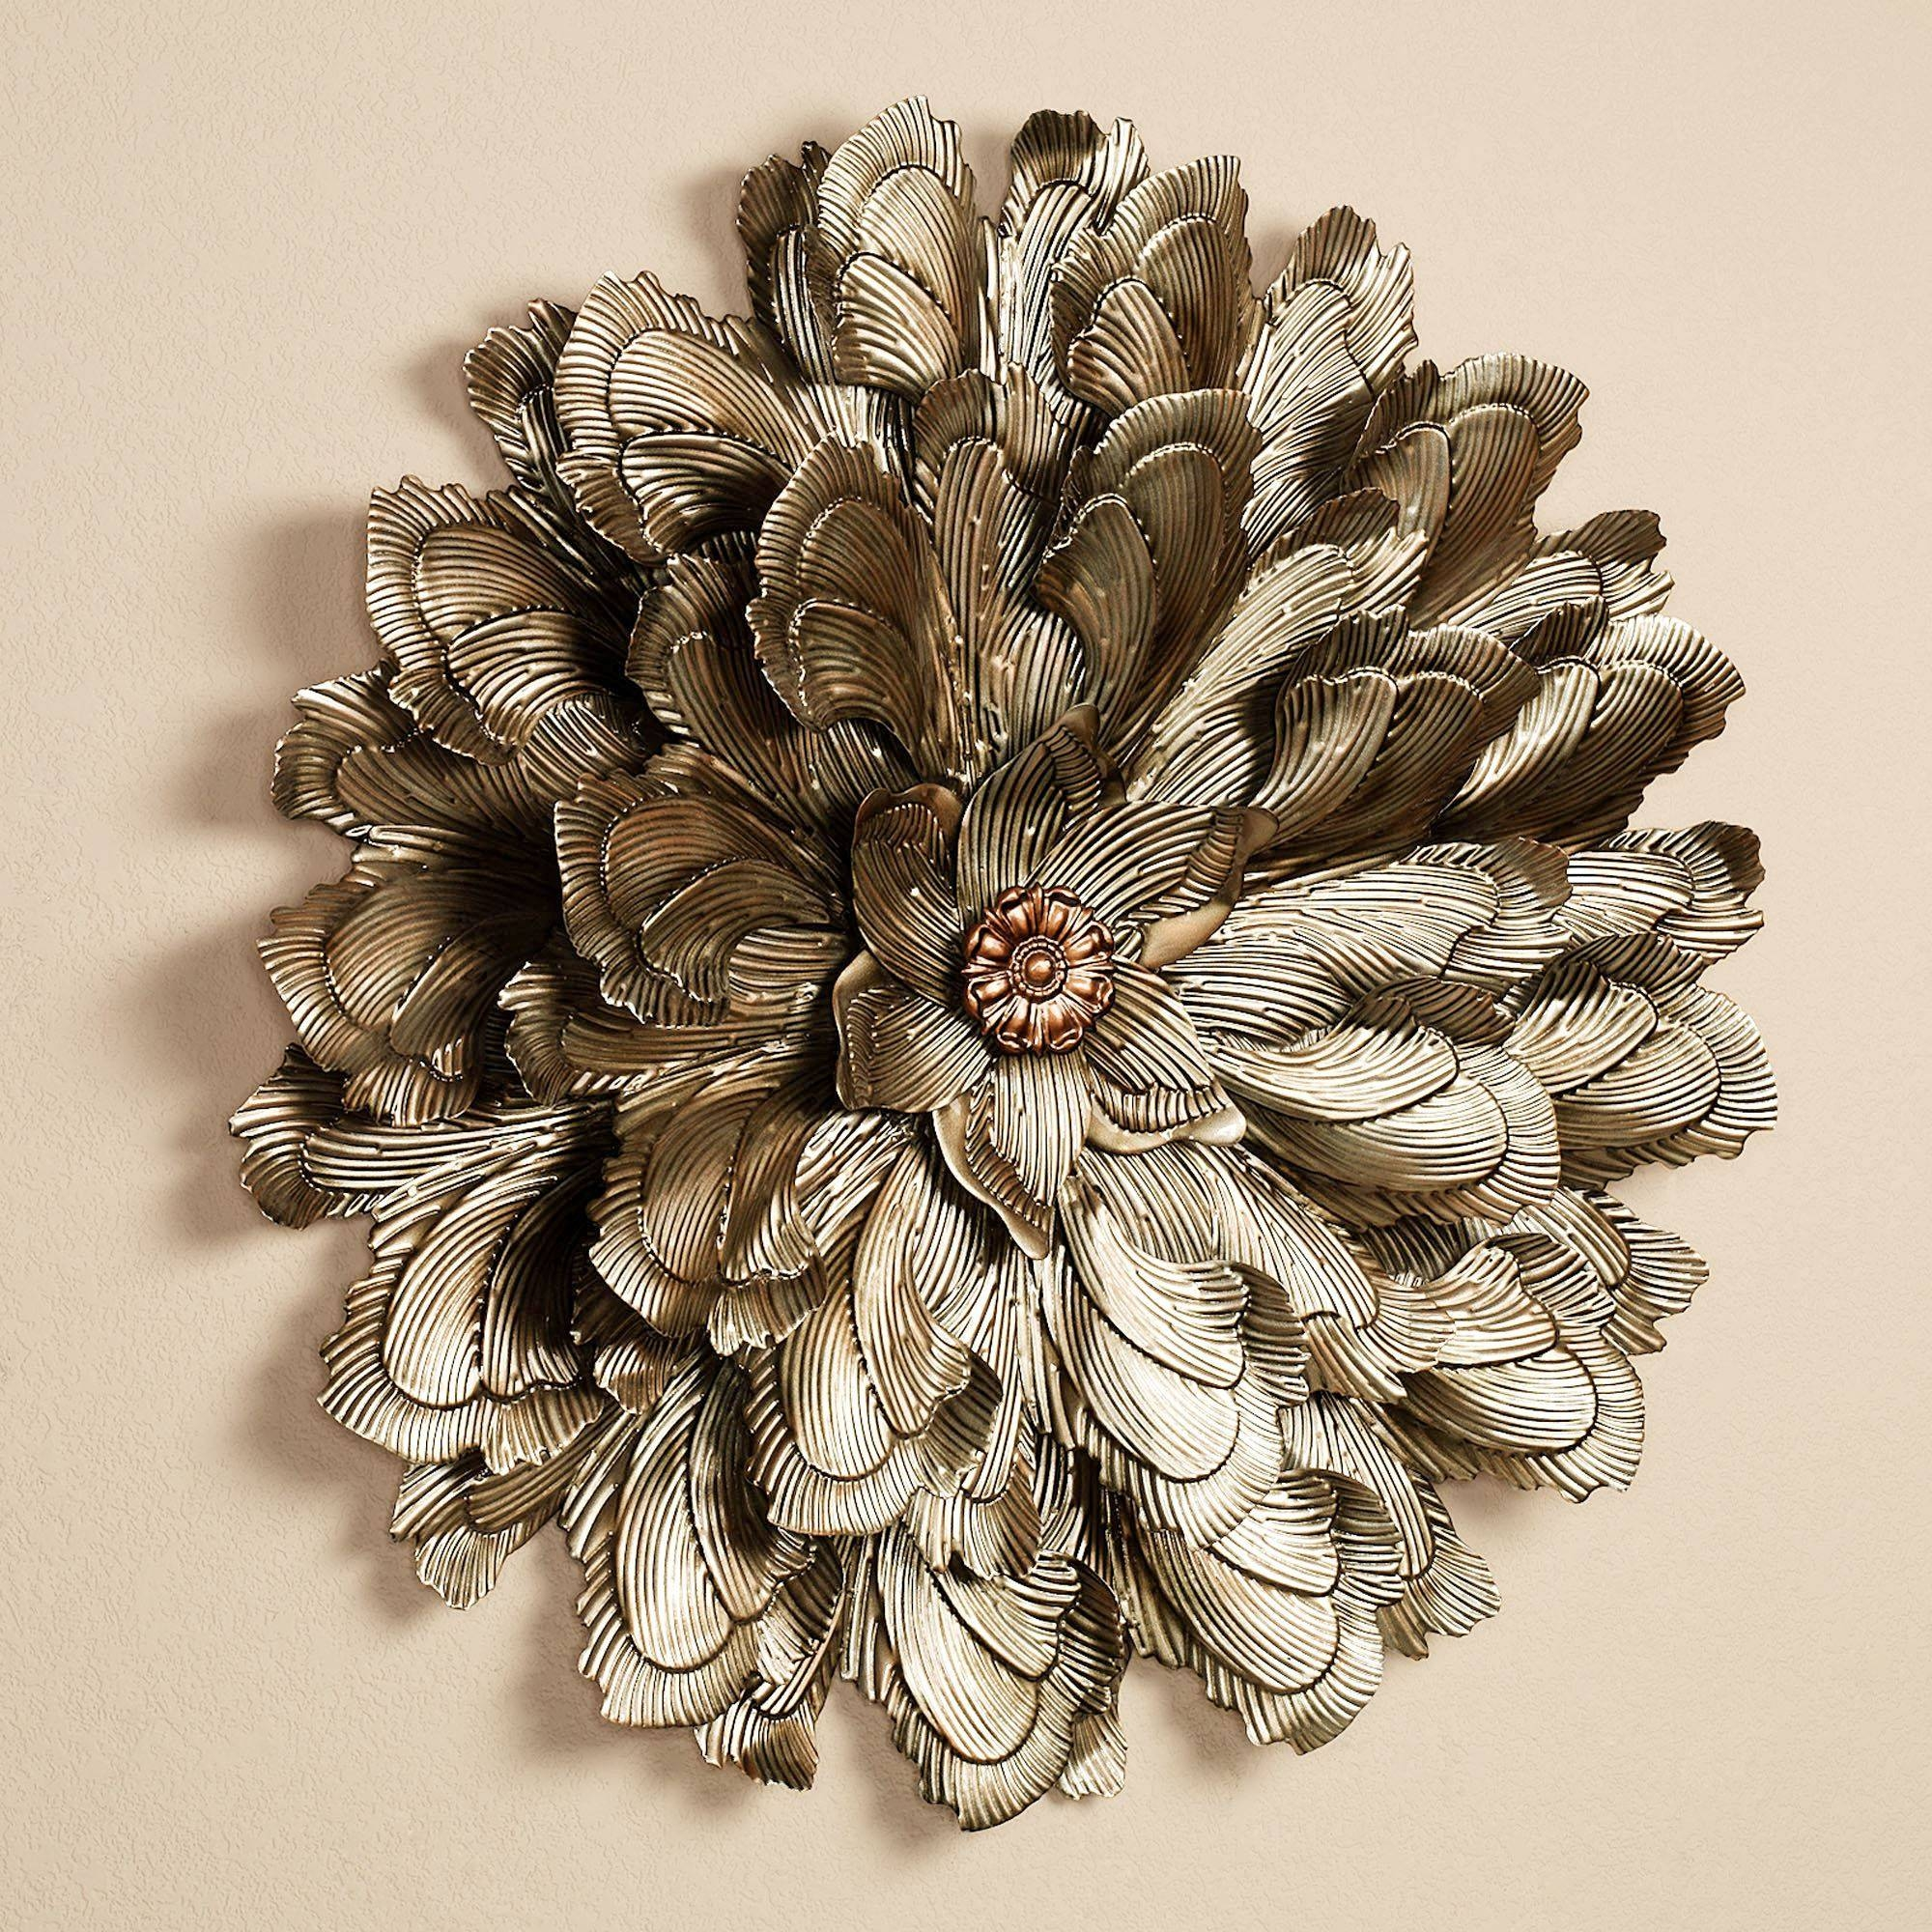 Delicate Flower Blossom Metal Wall Sculpture In Best And Newest Floral Metal Wall Art (View 6 of 20)